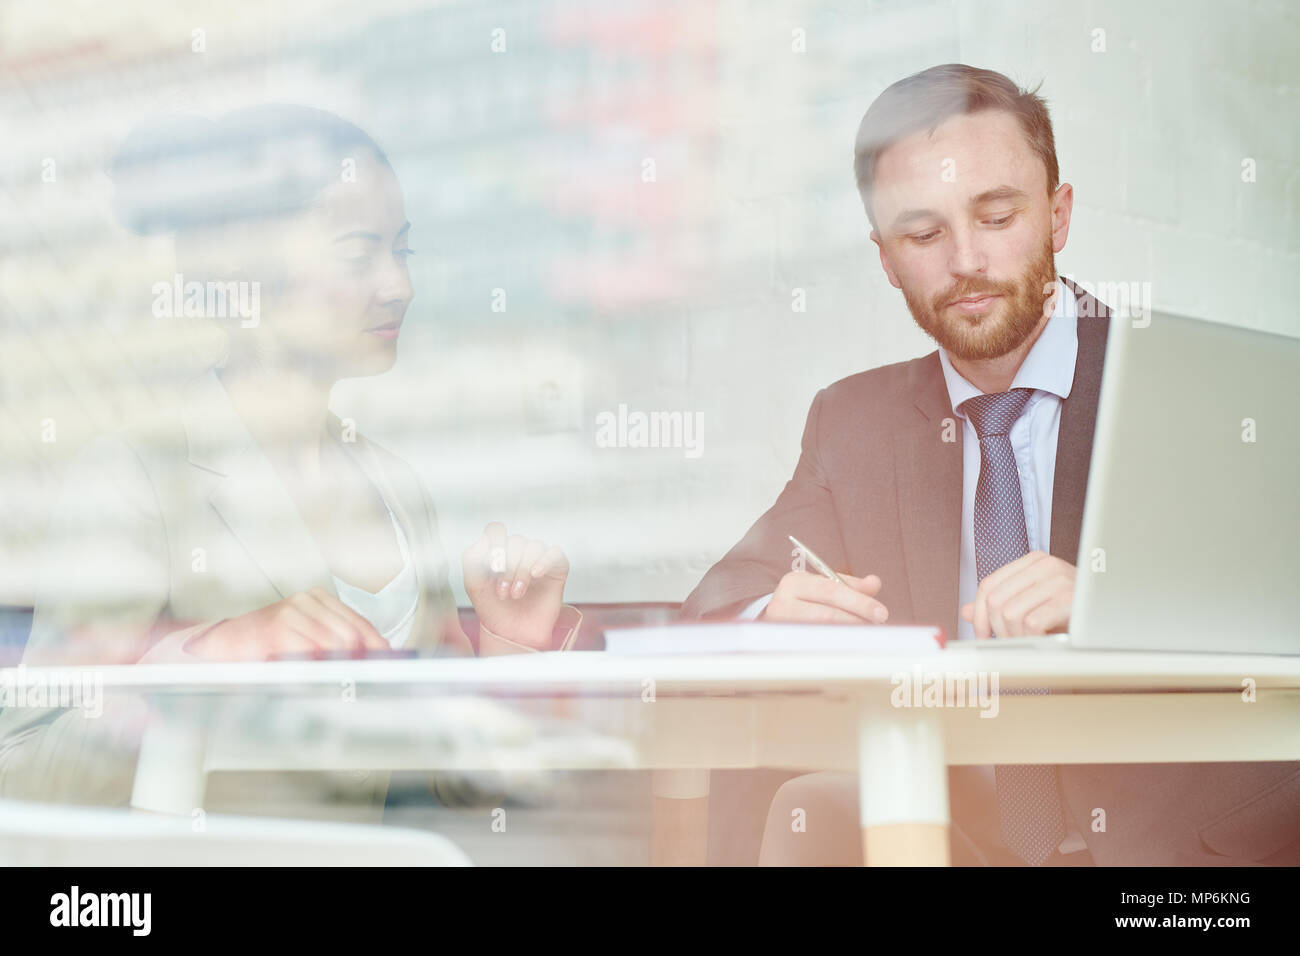 Handsome Businessman Behind Glass Wall - Stock Image